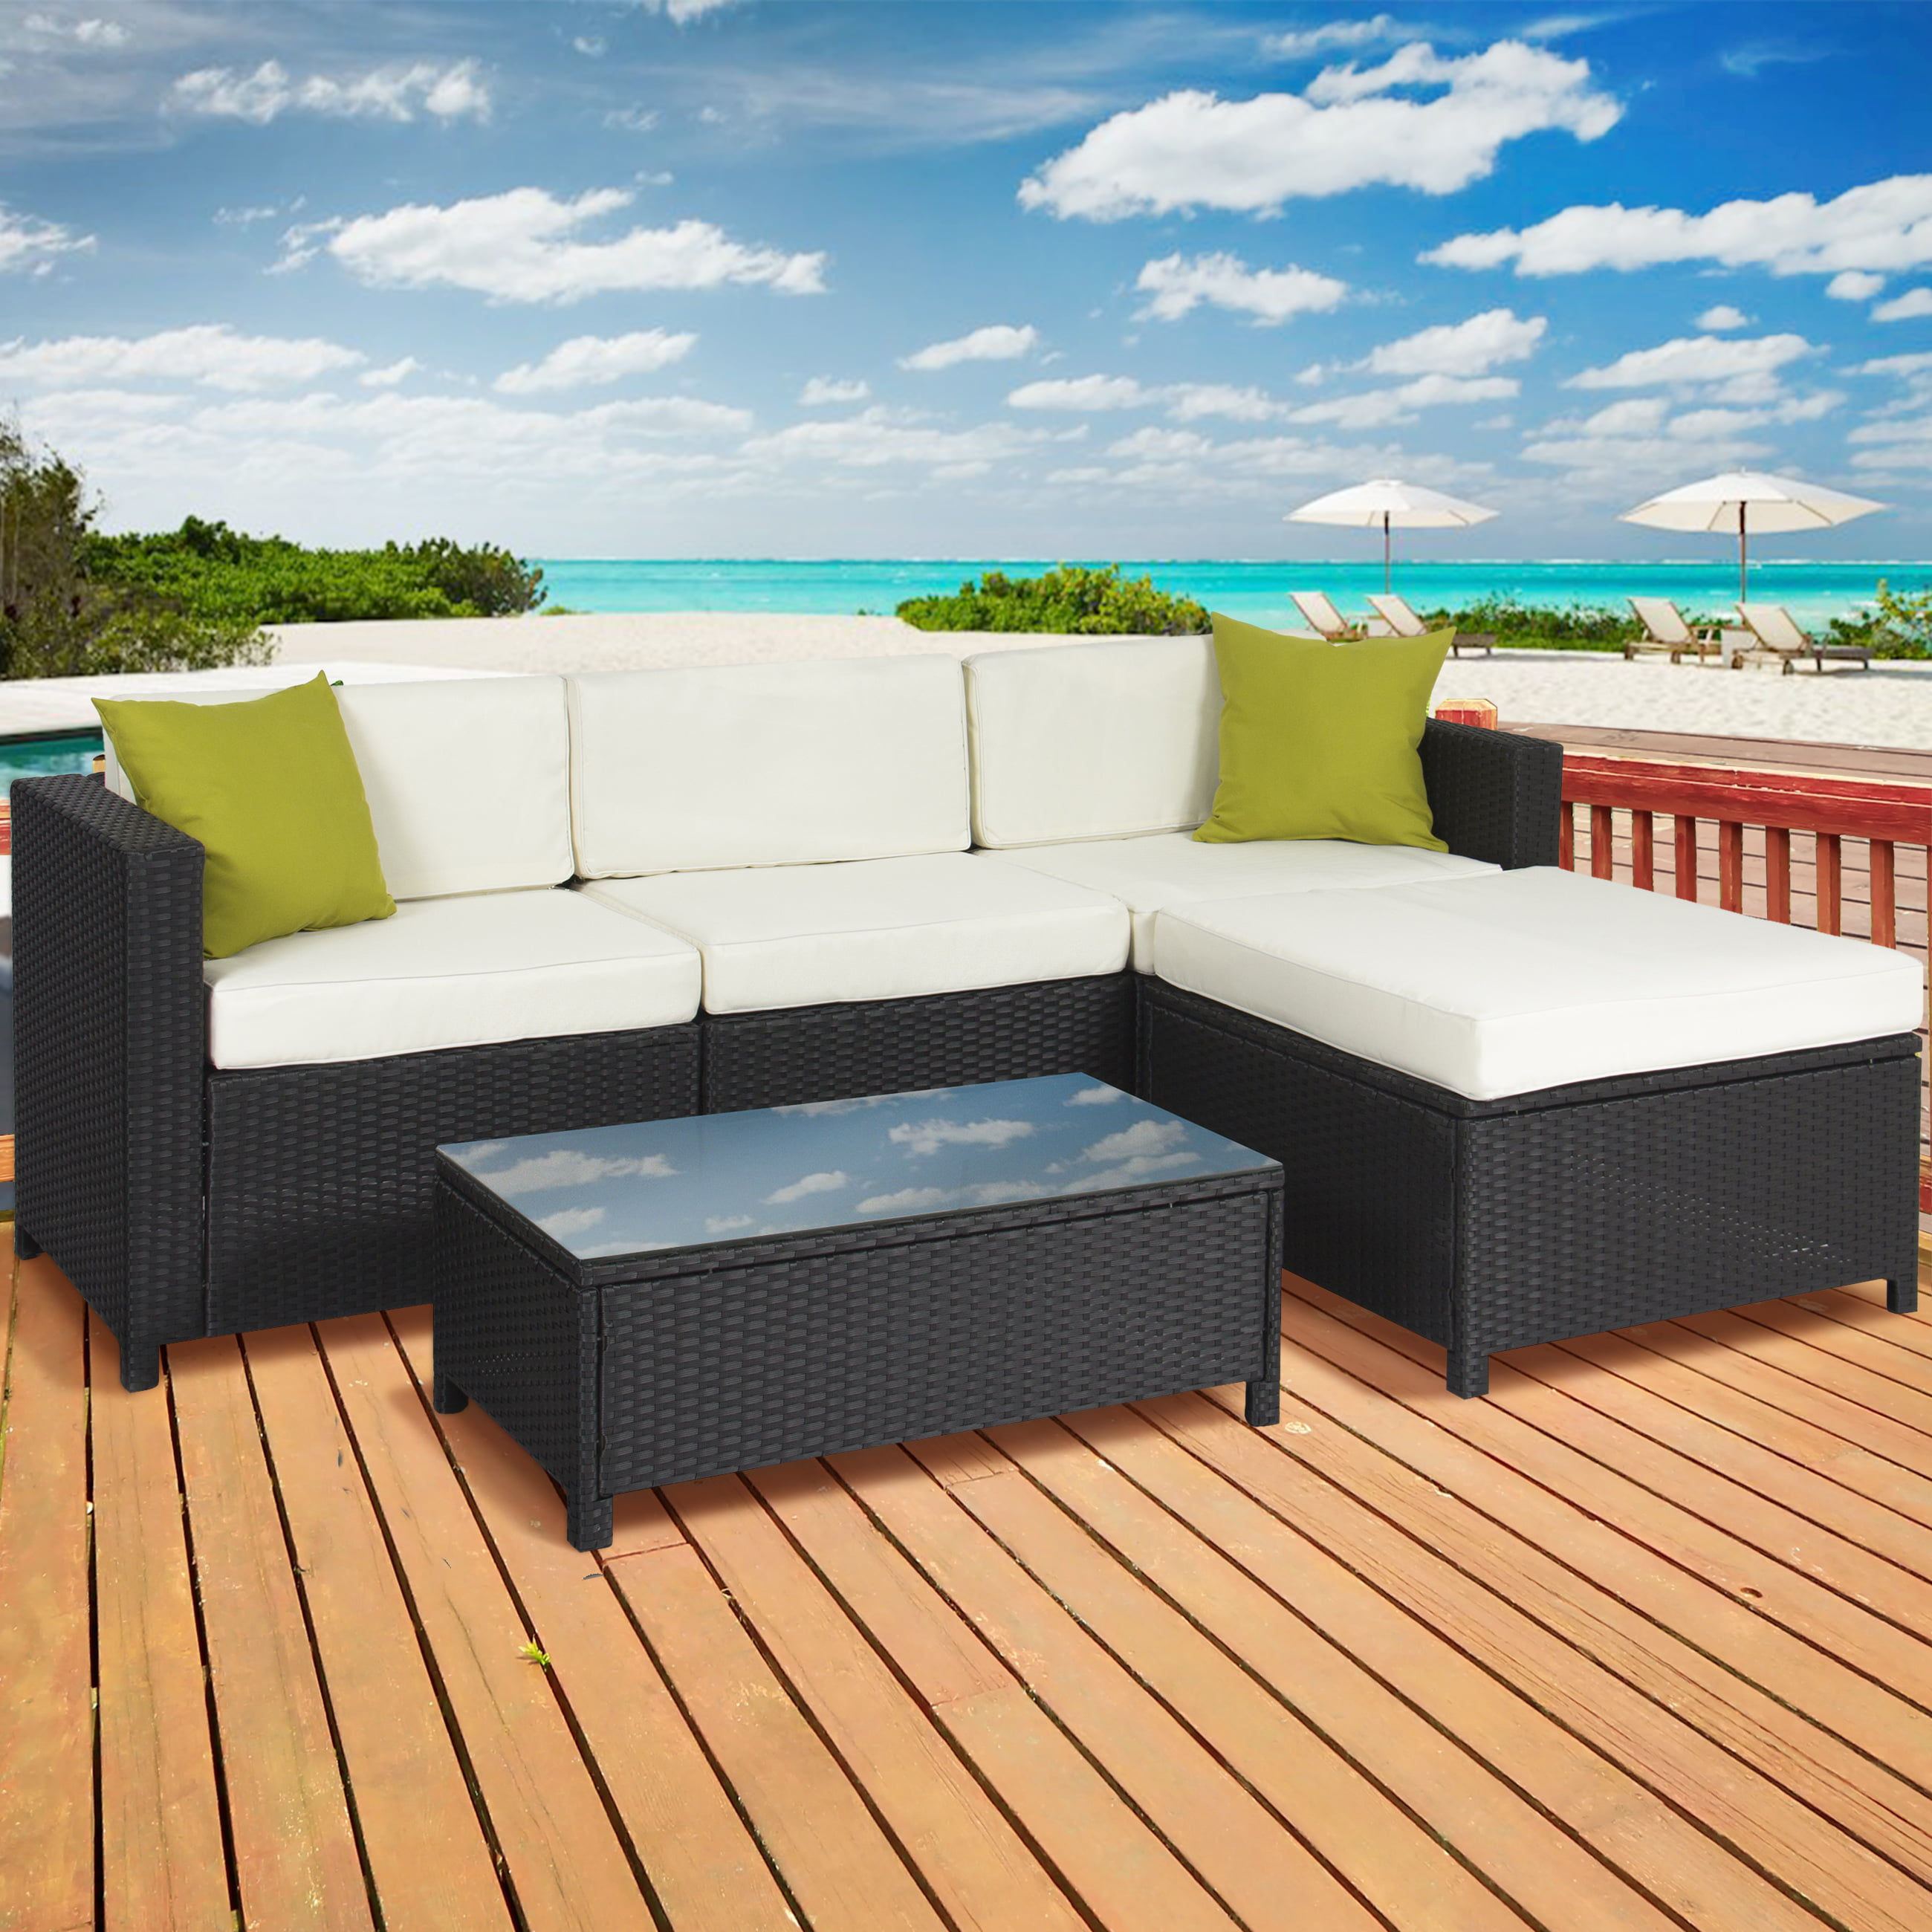 Fabulous Best Choice Products 5 Piece Modular Wicker Patio Sectional Pabps2019 Chair Design Images Pabps2019Com